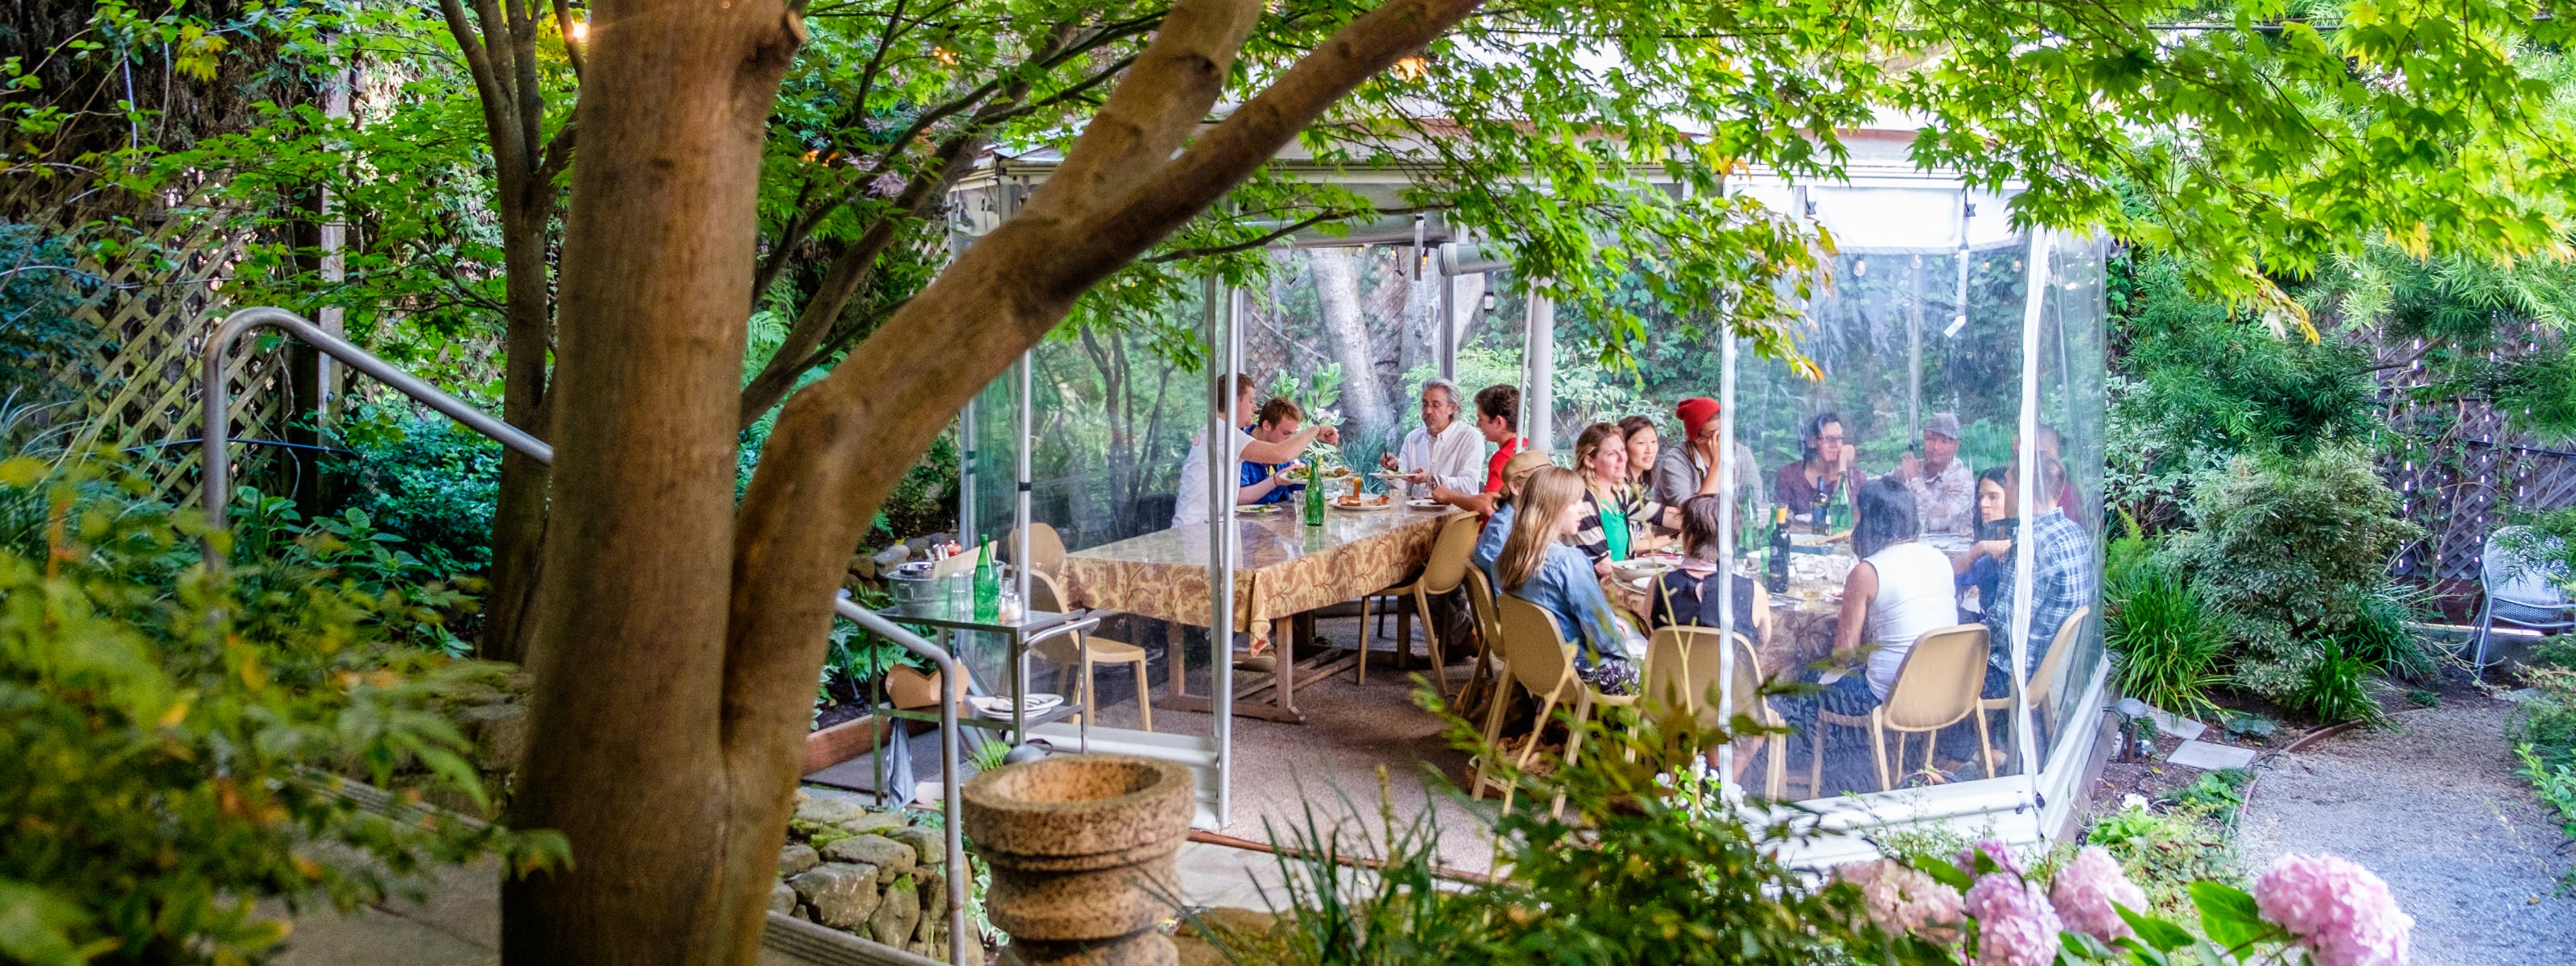 17 Quiet Patios Because This Is All Still A Bit Much - San Francisco - The Infatuation